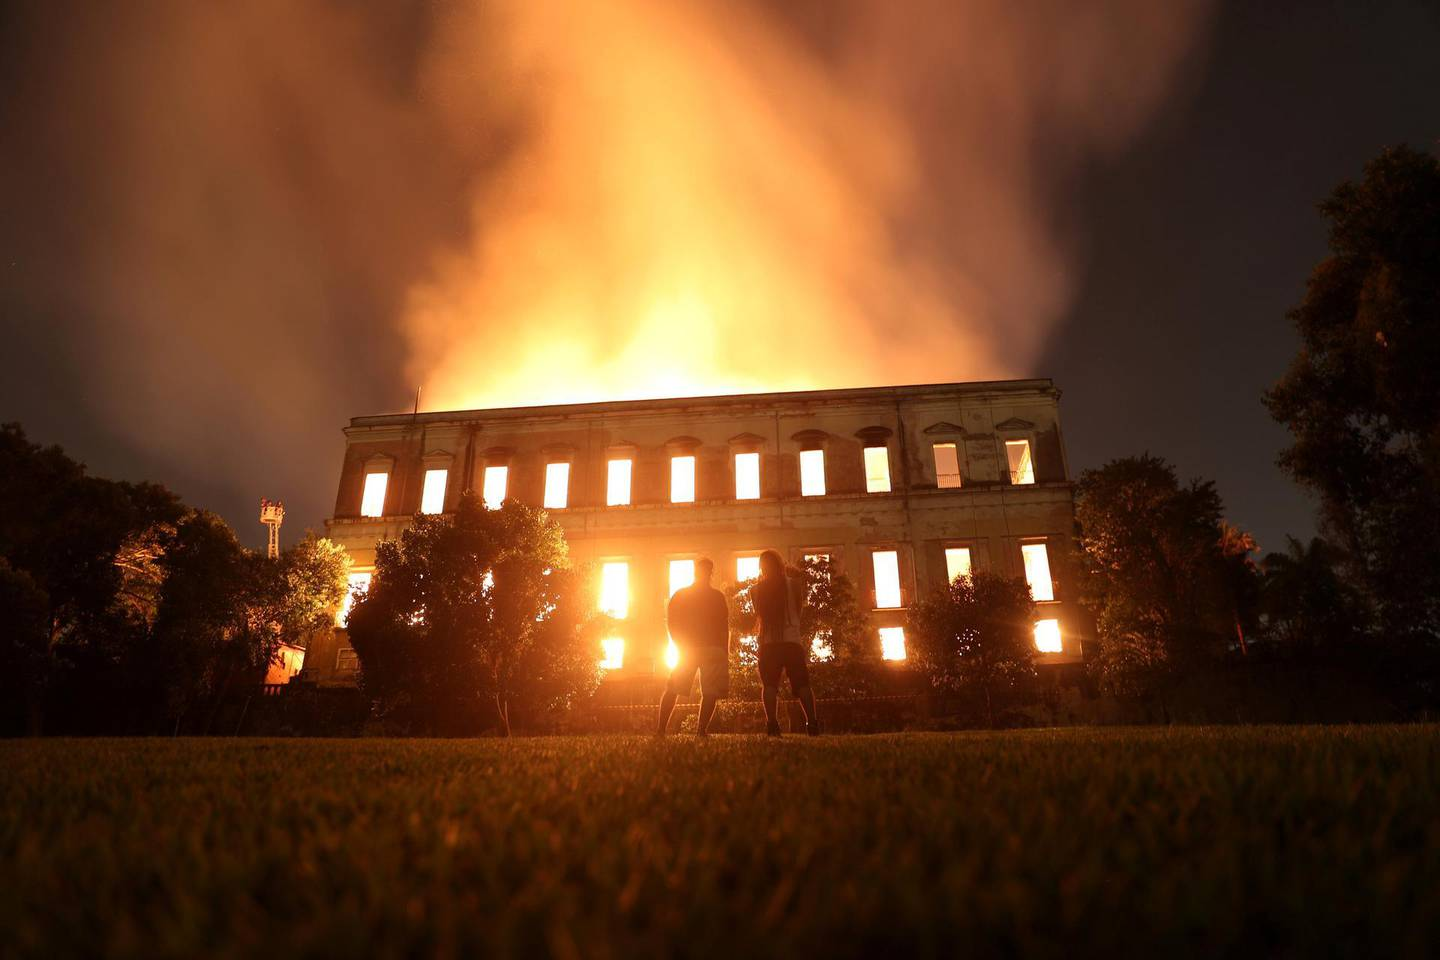 People watch as a fire burns at the National Museum of Brazil in Rio de Janeiro, Brazil September 2, 2018. REUTERS/Ricardo Moraes